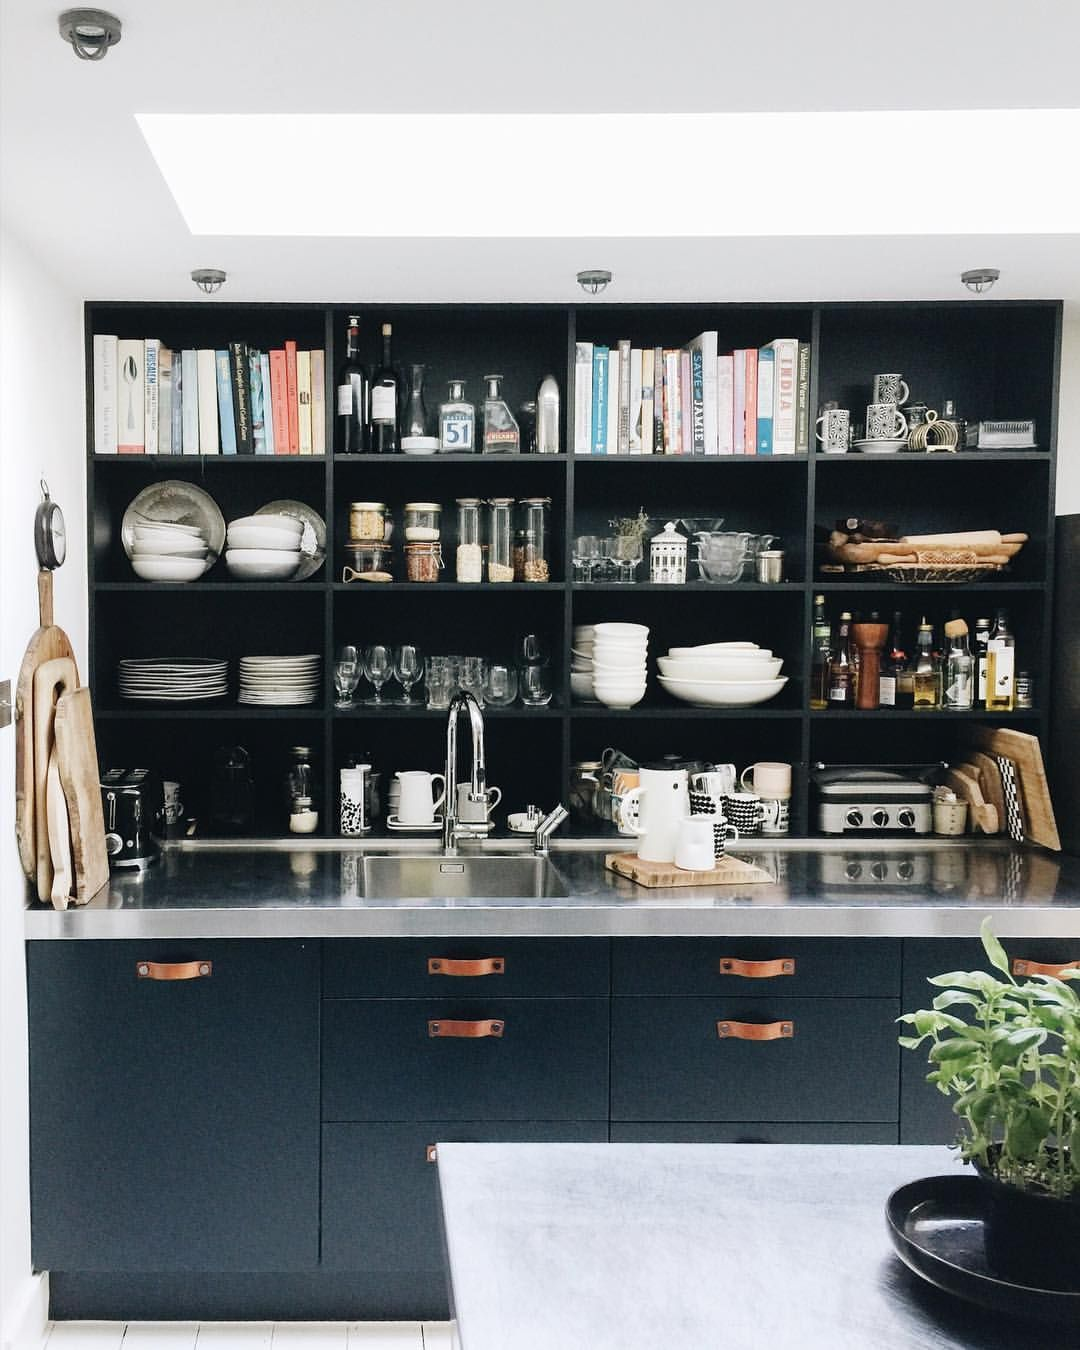 hurray for friday here are my shelves all tidy and on kitchen shelves instead of cabinets id=11380